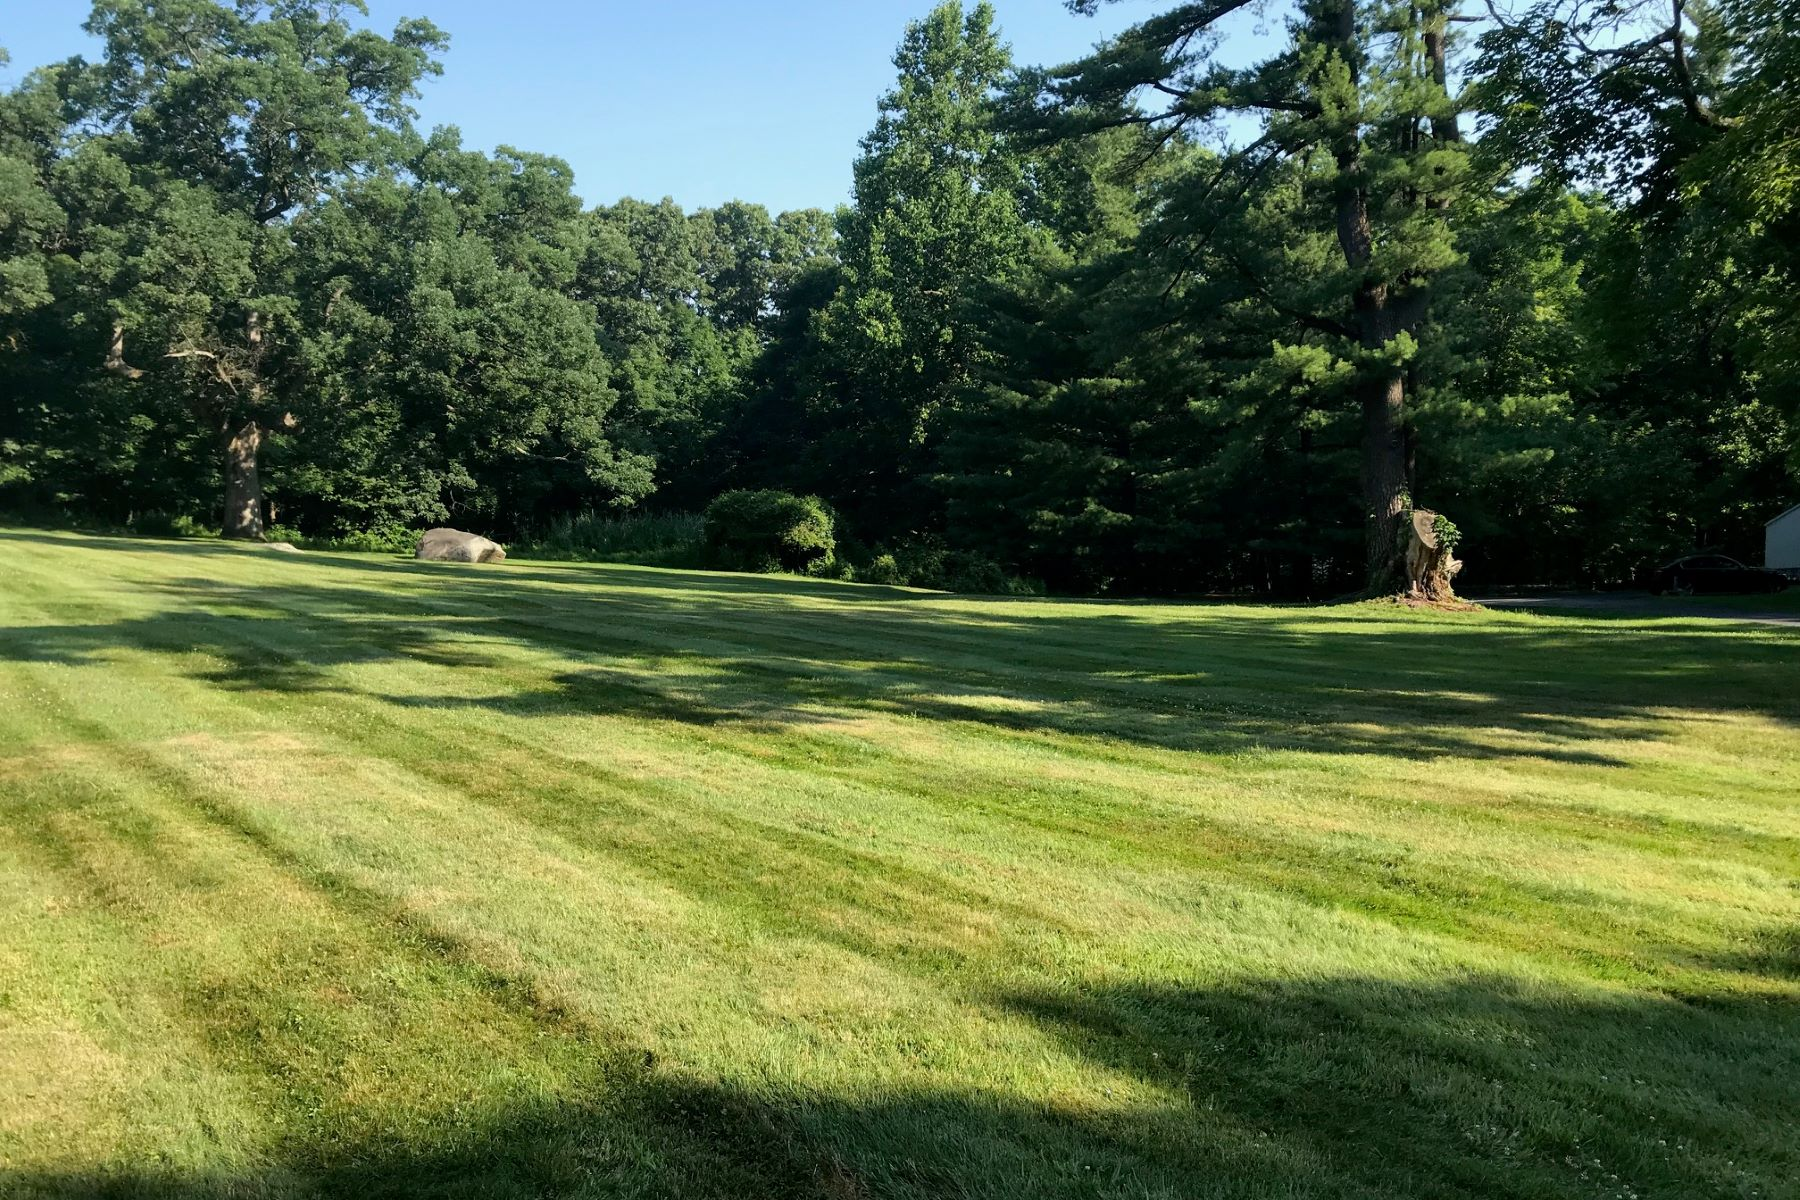 Land for Sale at Rare Offering 54 Ludlow Lane Palisades, New York 10964 United States